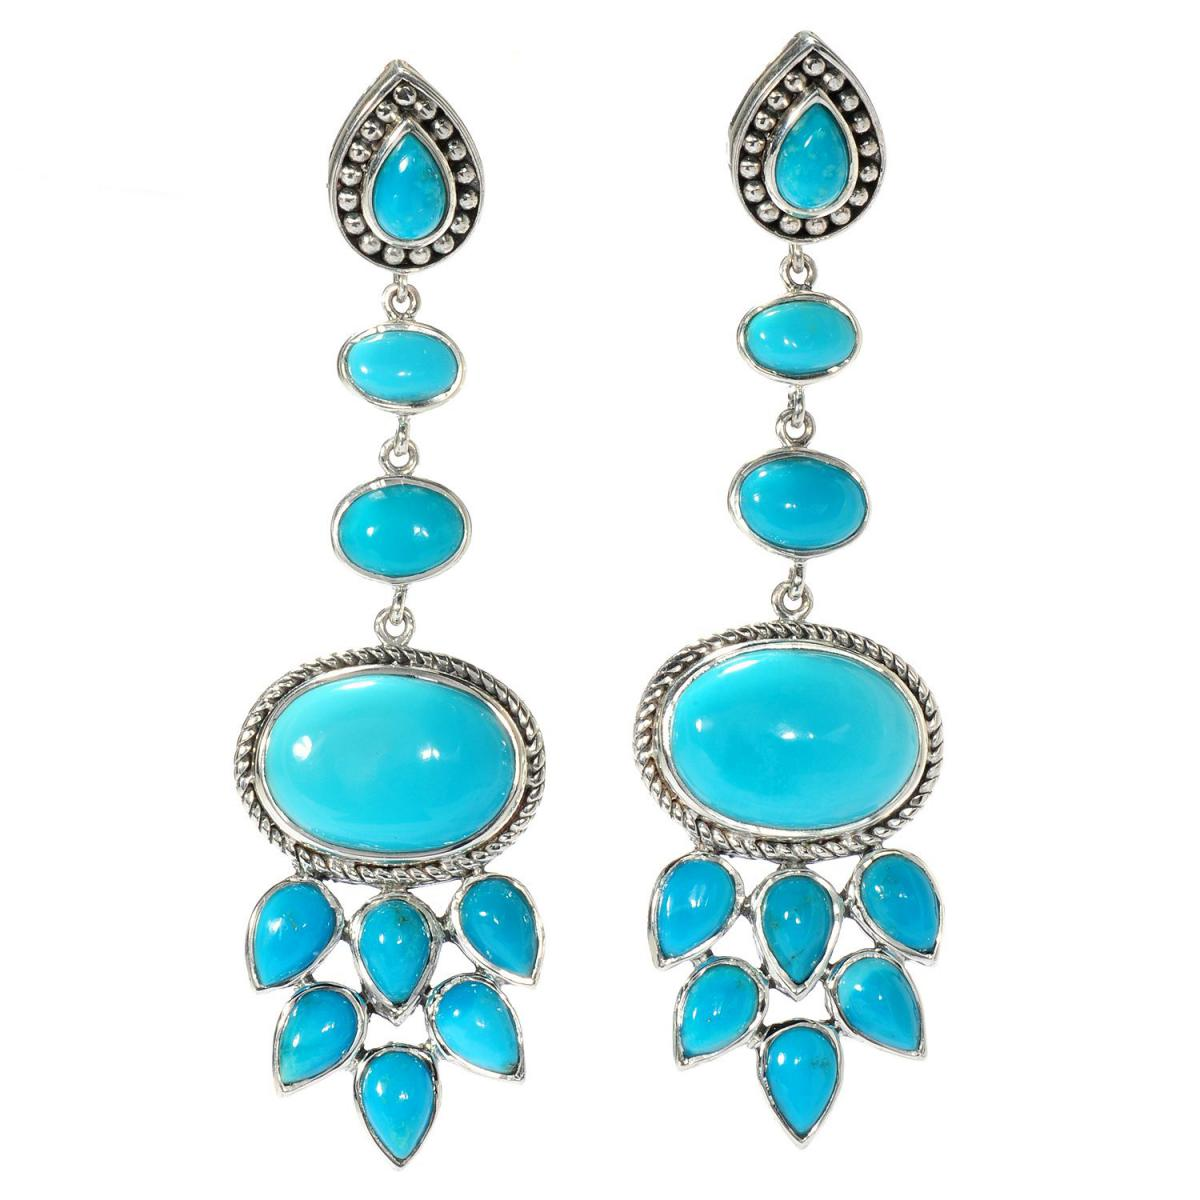 Samuel B Collection sleeping beauty turquoise earrings